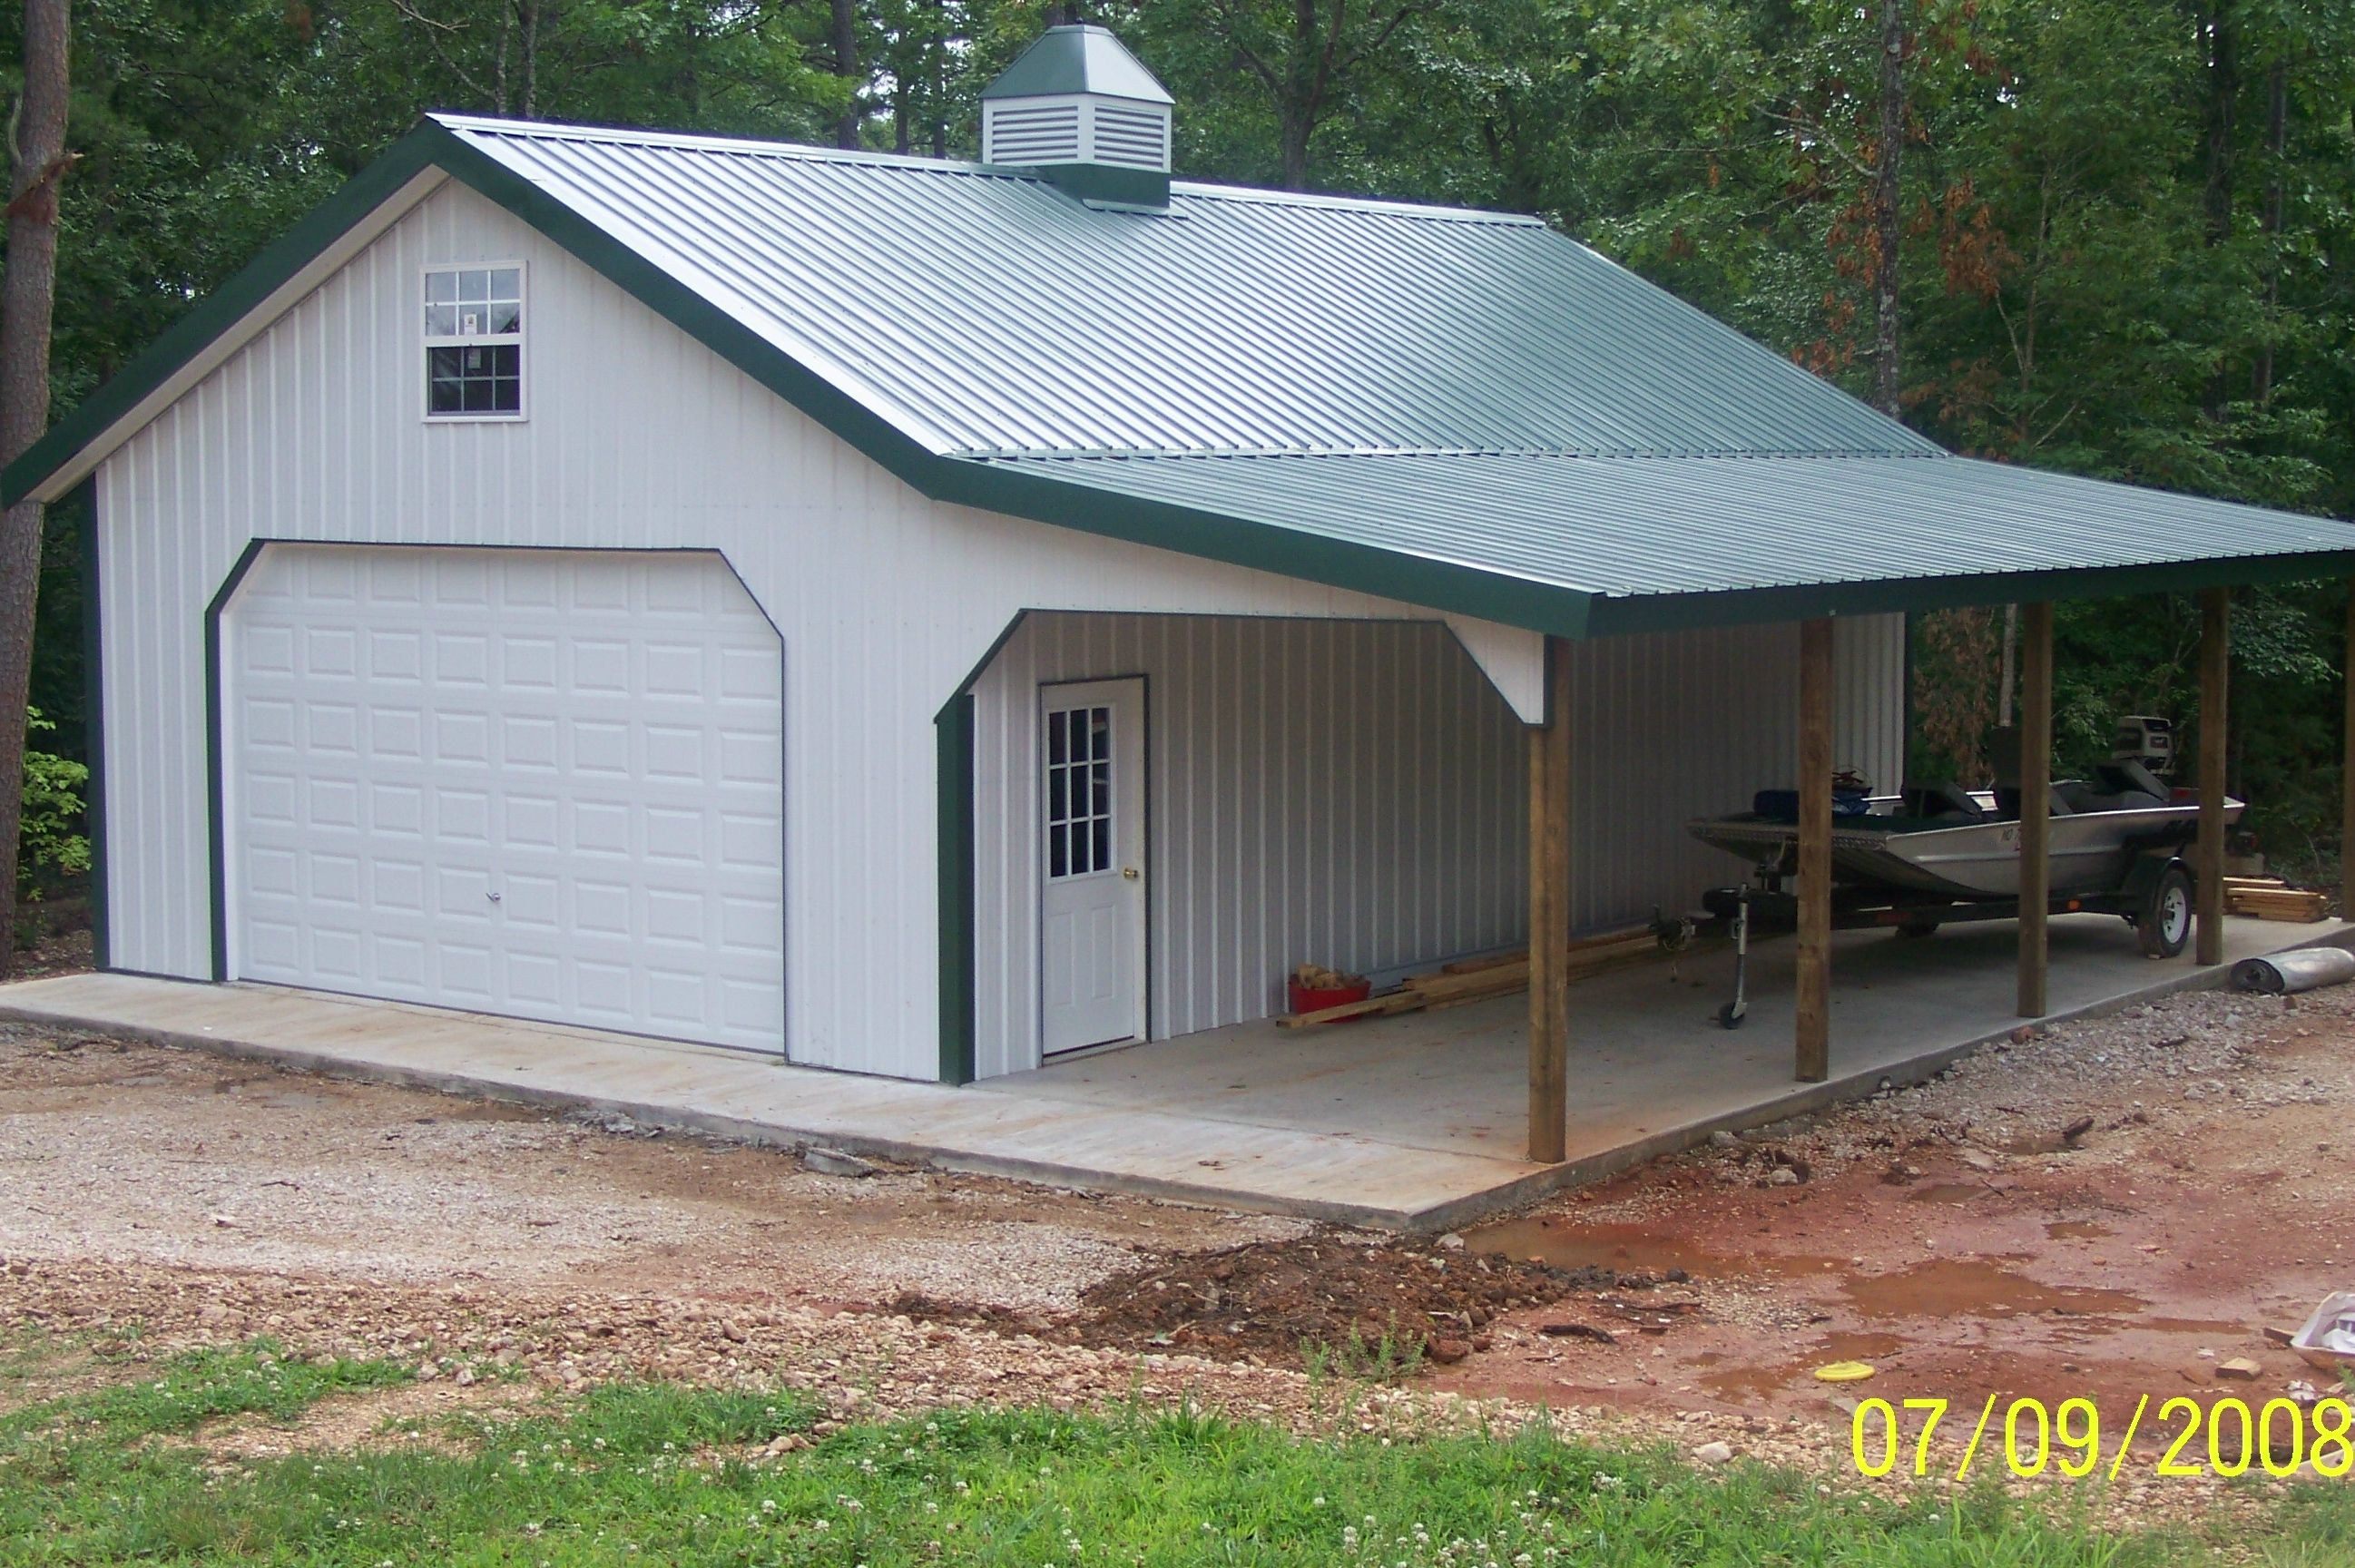 Garage plans 58 garage plans and free diy building for Pole barn interior ideas